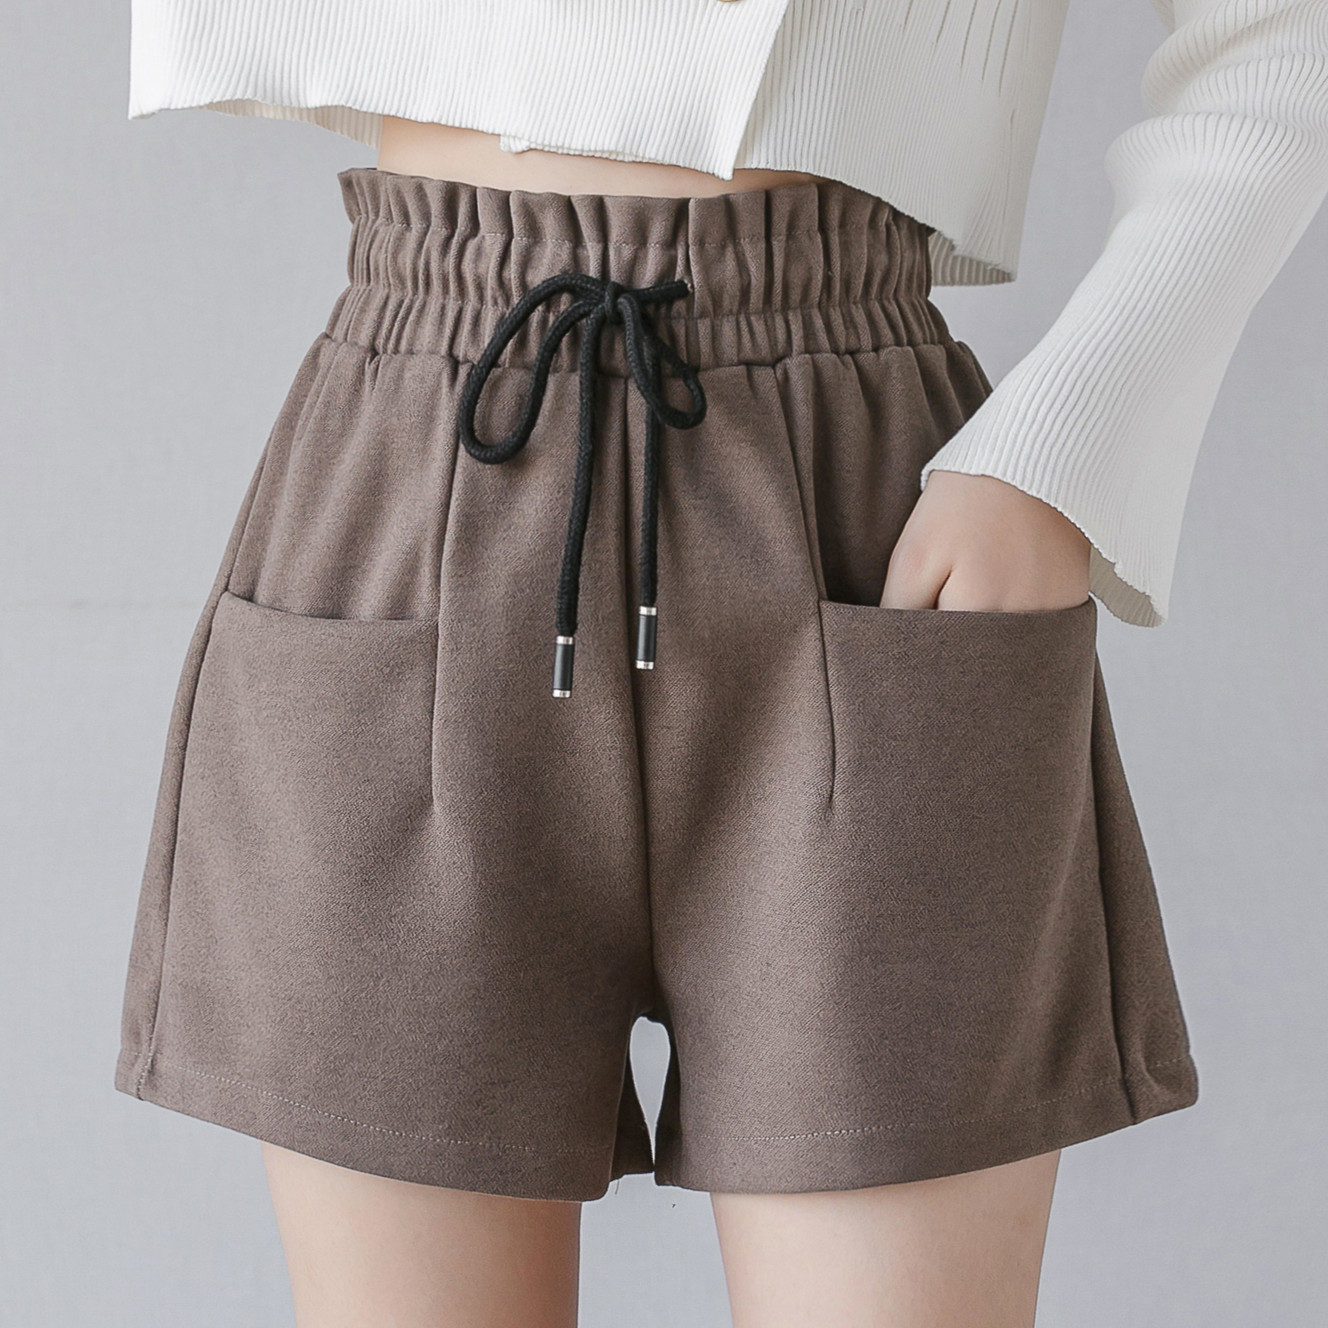 Fall Winter Short Pants Tweed Wool Shorts Women 2019 Sexy High Waist Shorts Fashion Plus Size Flare Boots Trousers Loose 4XL